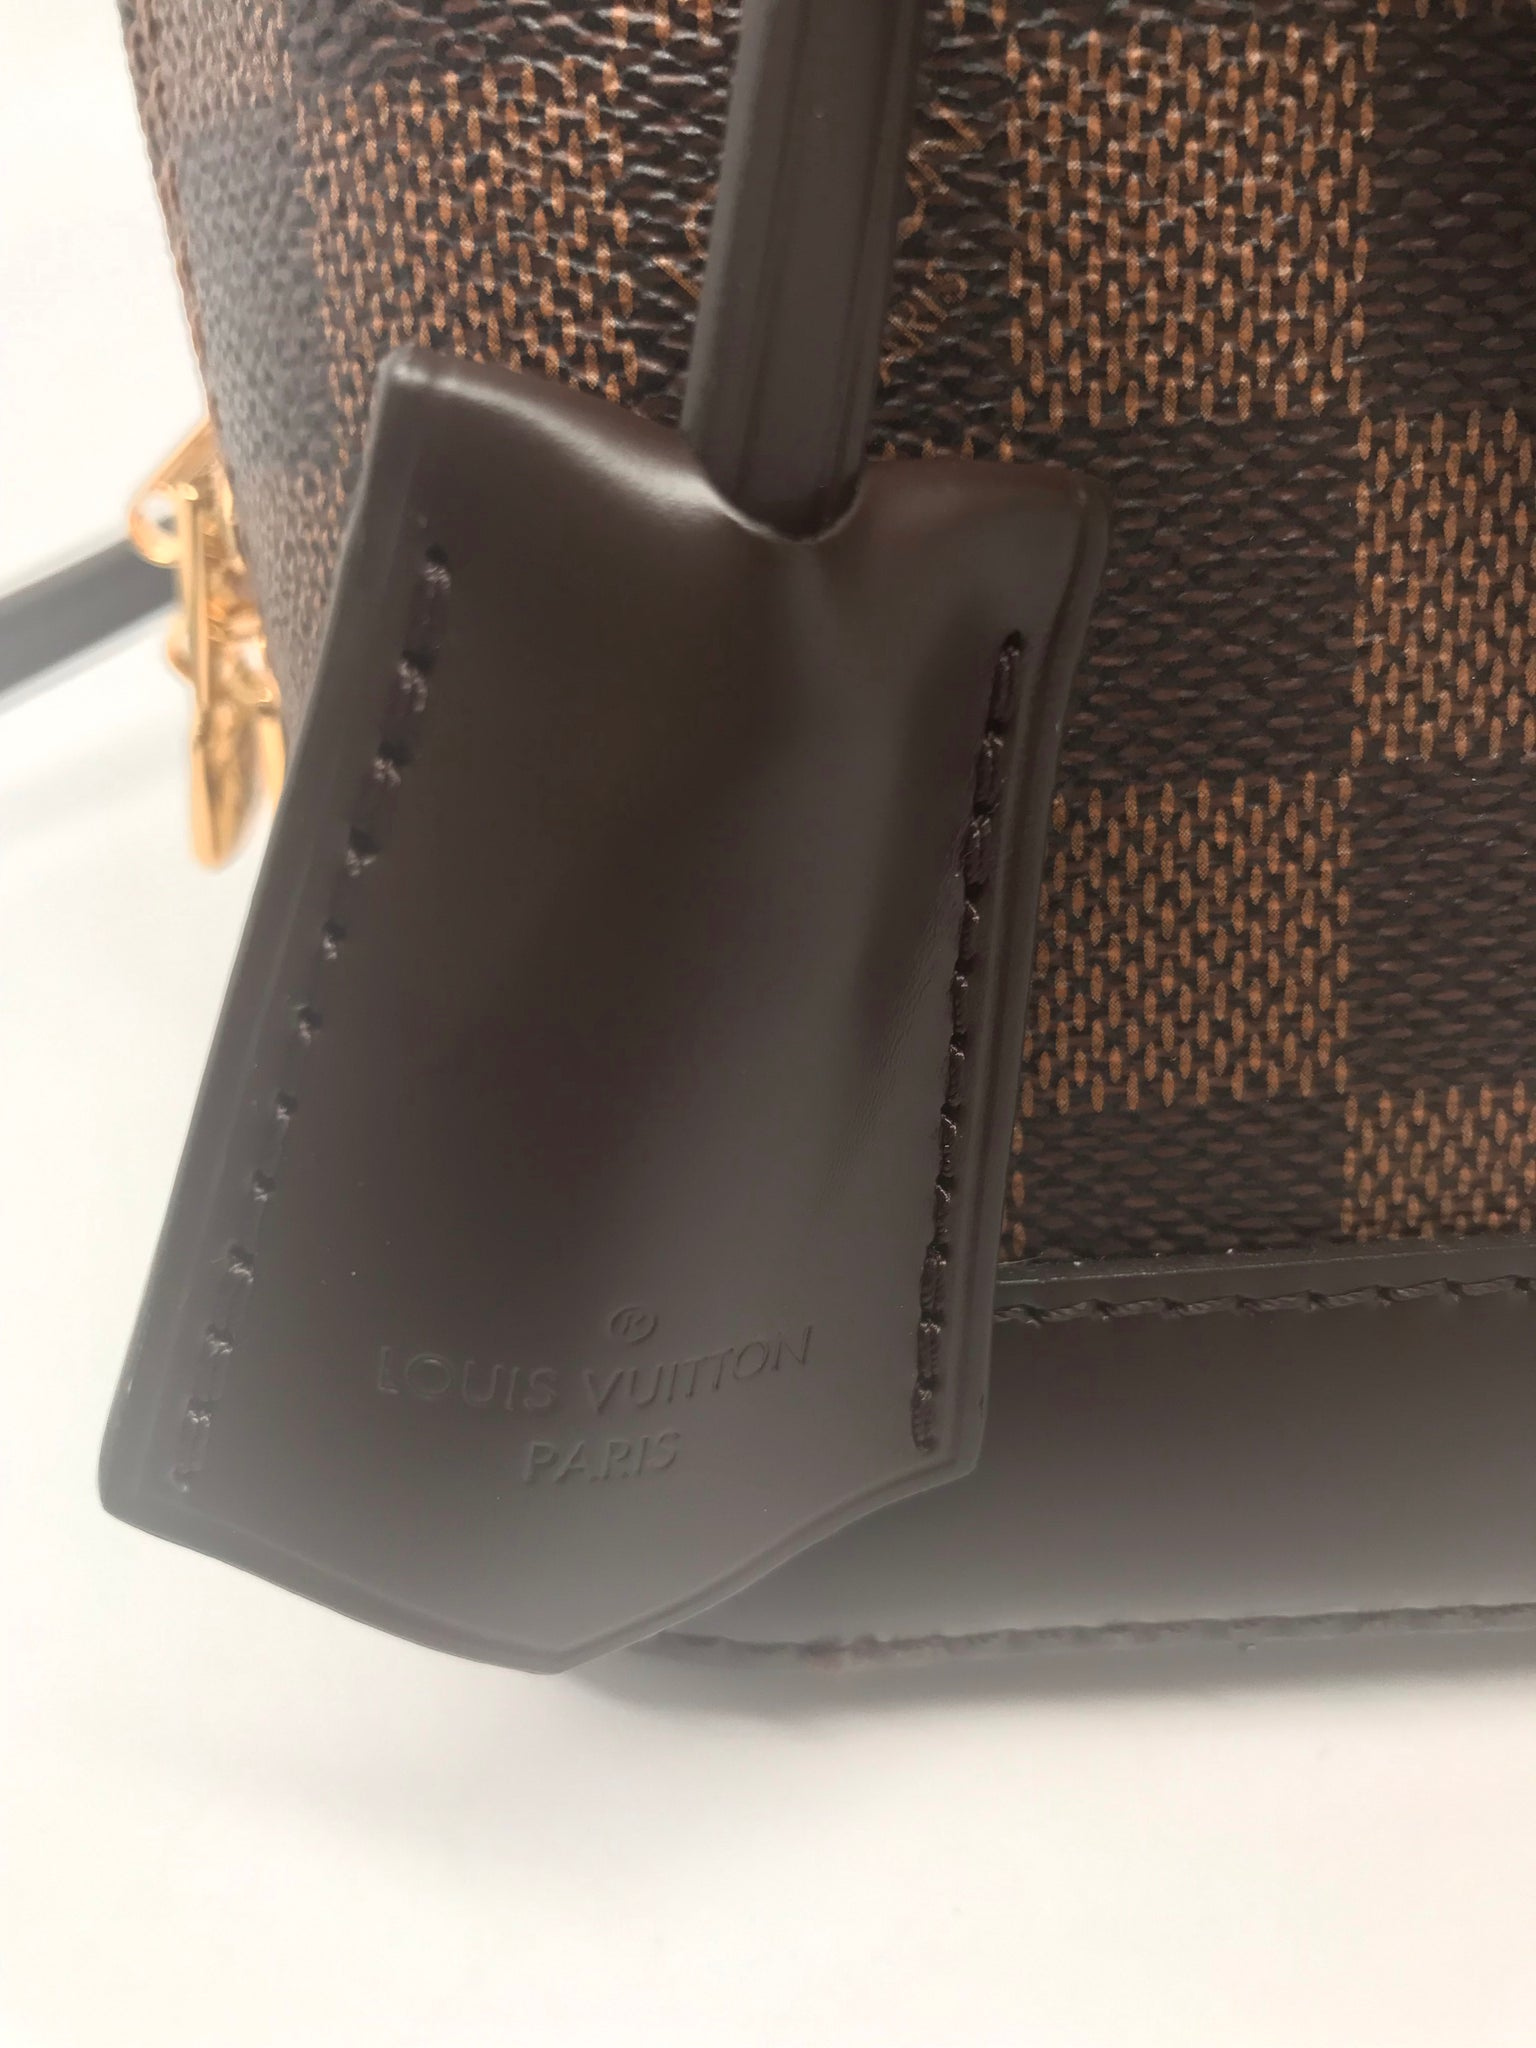 LOUIS VUITTON ALMA BB DAMIER EBENE CANVAS